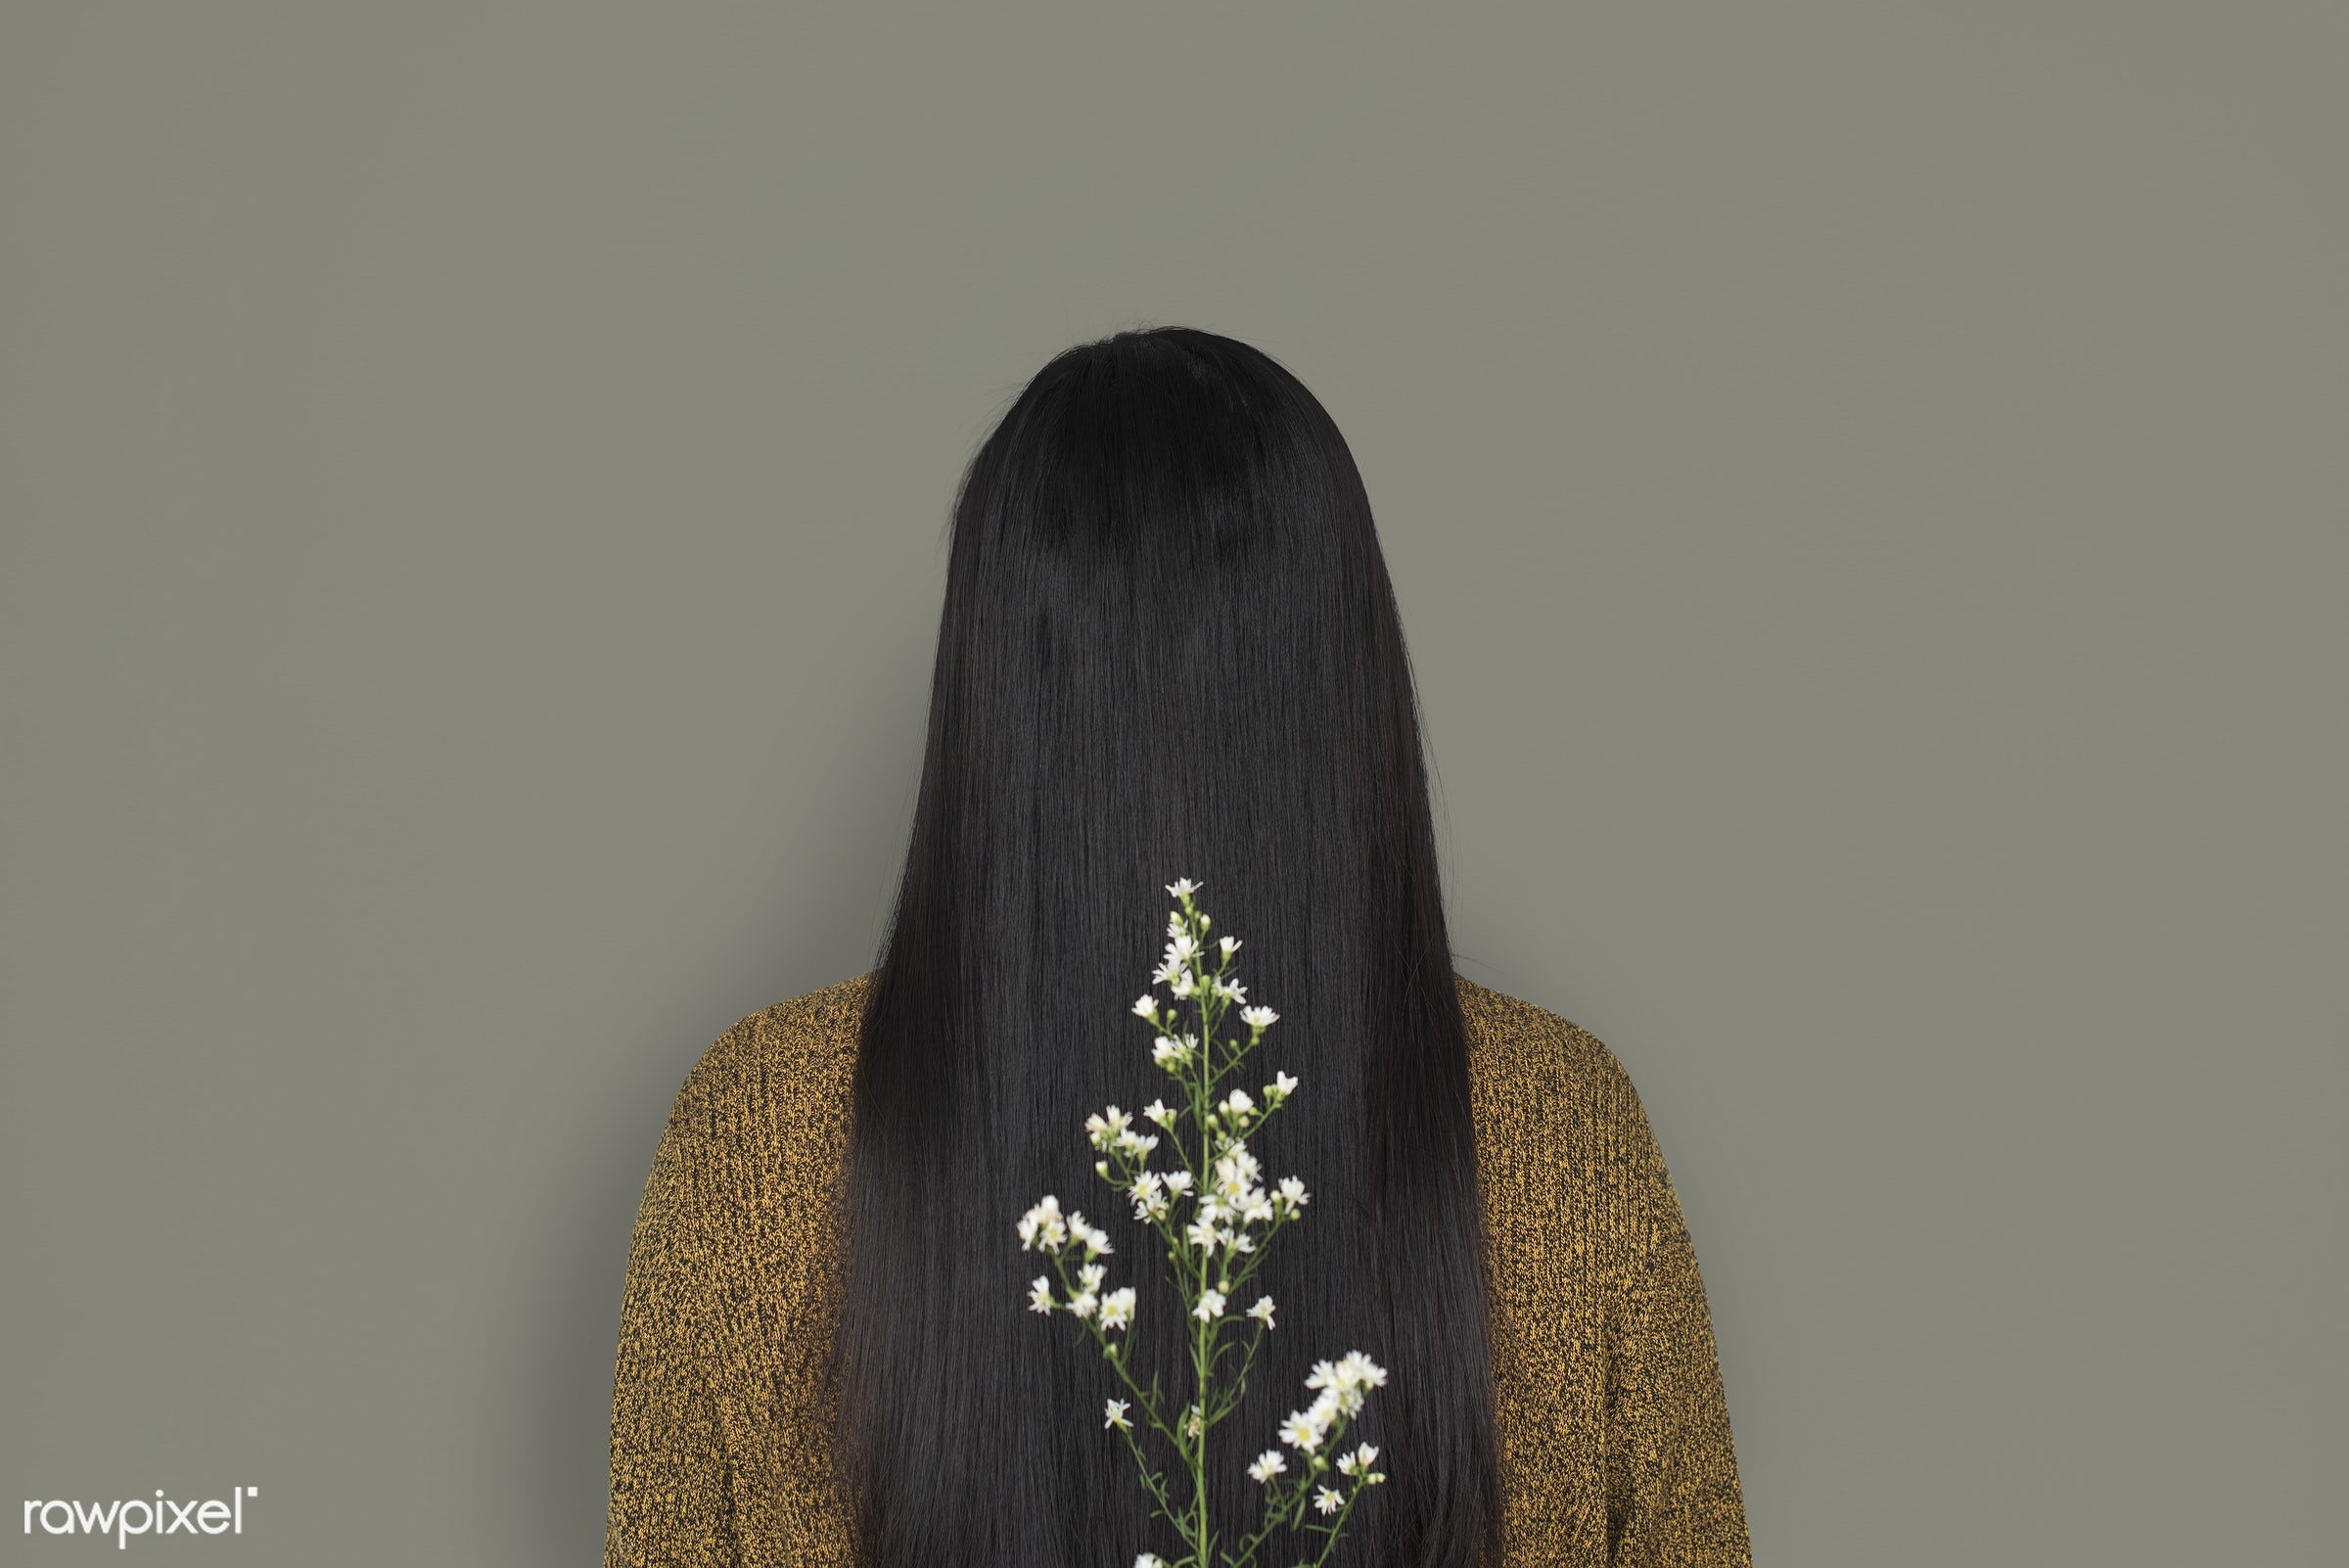 studio, person, people, girl, woman, casual, grey, flower, rear view, isolated, flora, long hair, adult, portrait, charming...